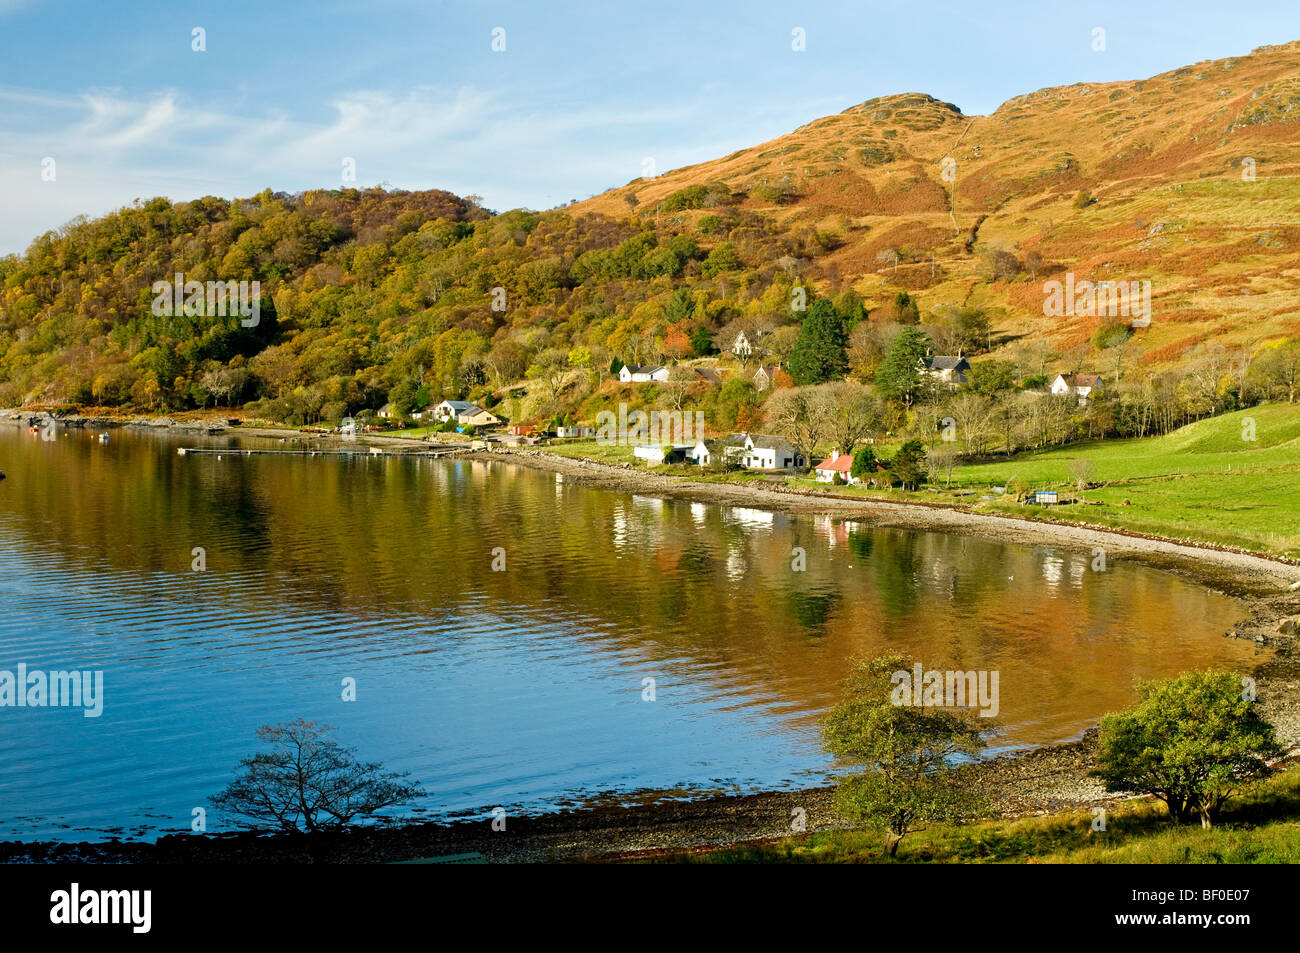 Glenborrodale Kilchoan on the Ardnamurchan Peninsula on the Scottish West Coast Argyll.  SCO 5448. - Stock Image